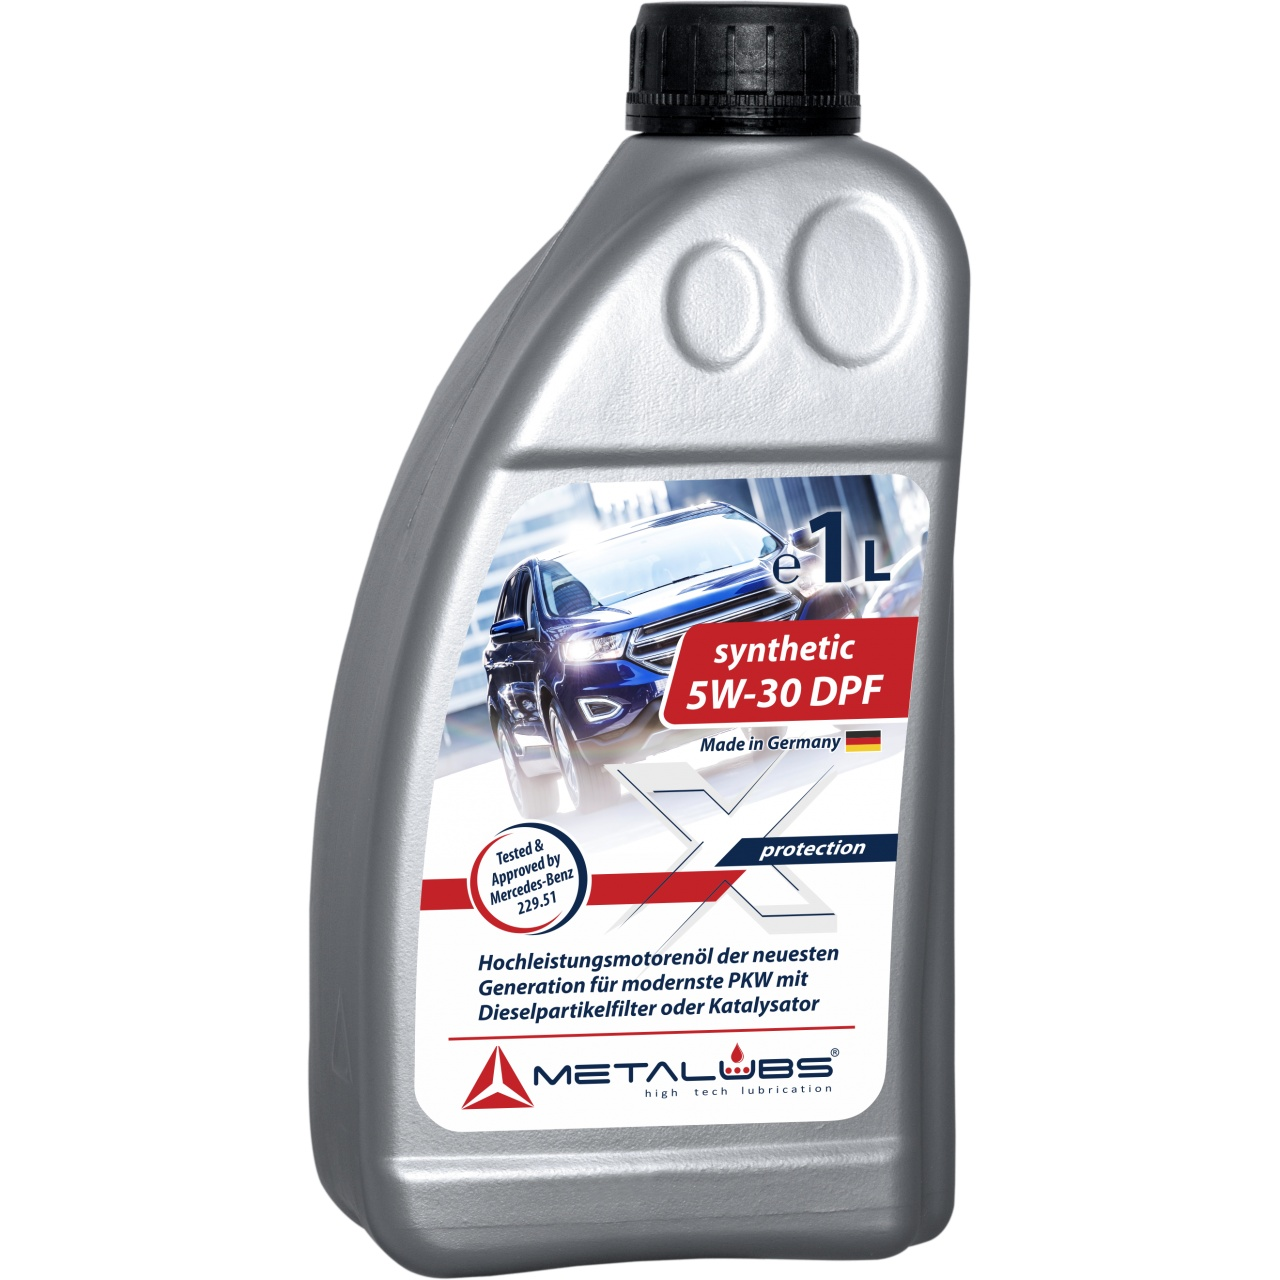 Metalubs Synthetic Oil 5W-30 DPF 1l